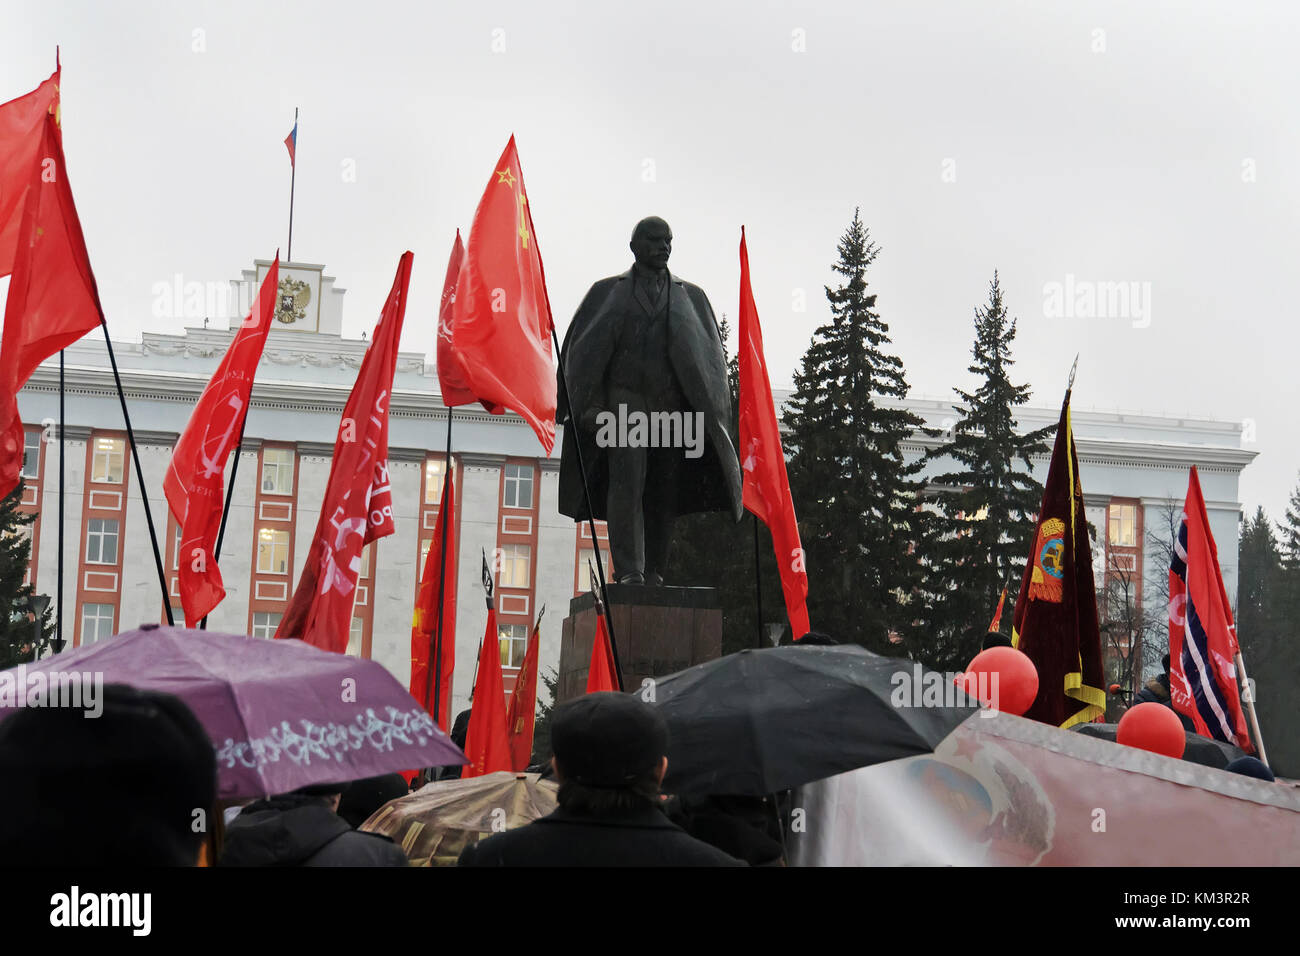 celebration of the great October revolution. The traditional demonstration on 7 November. Many people gathered at Stock Photo